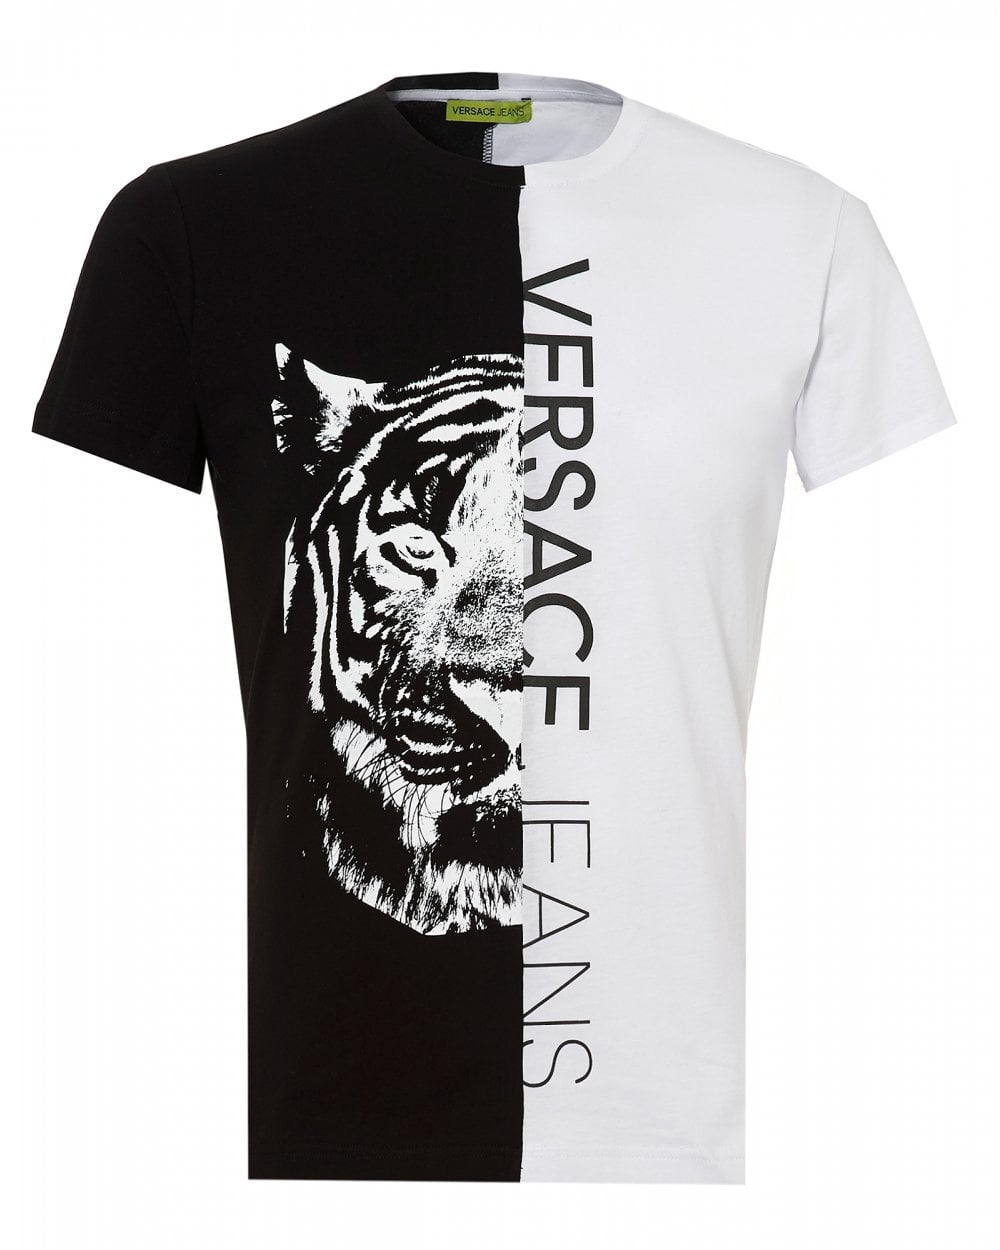 6dc639b4b Versace Jeans Mens Split Tiger Graphic T-Shirt, White Slim Fit Tee